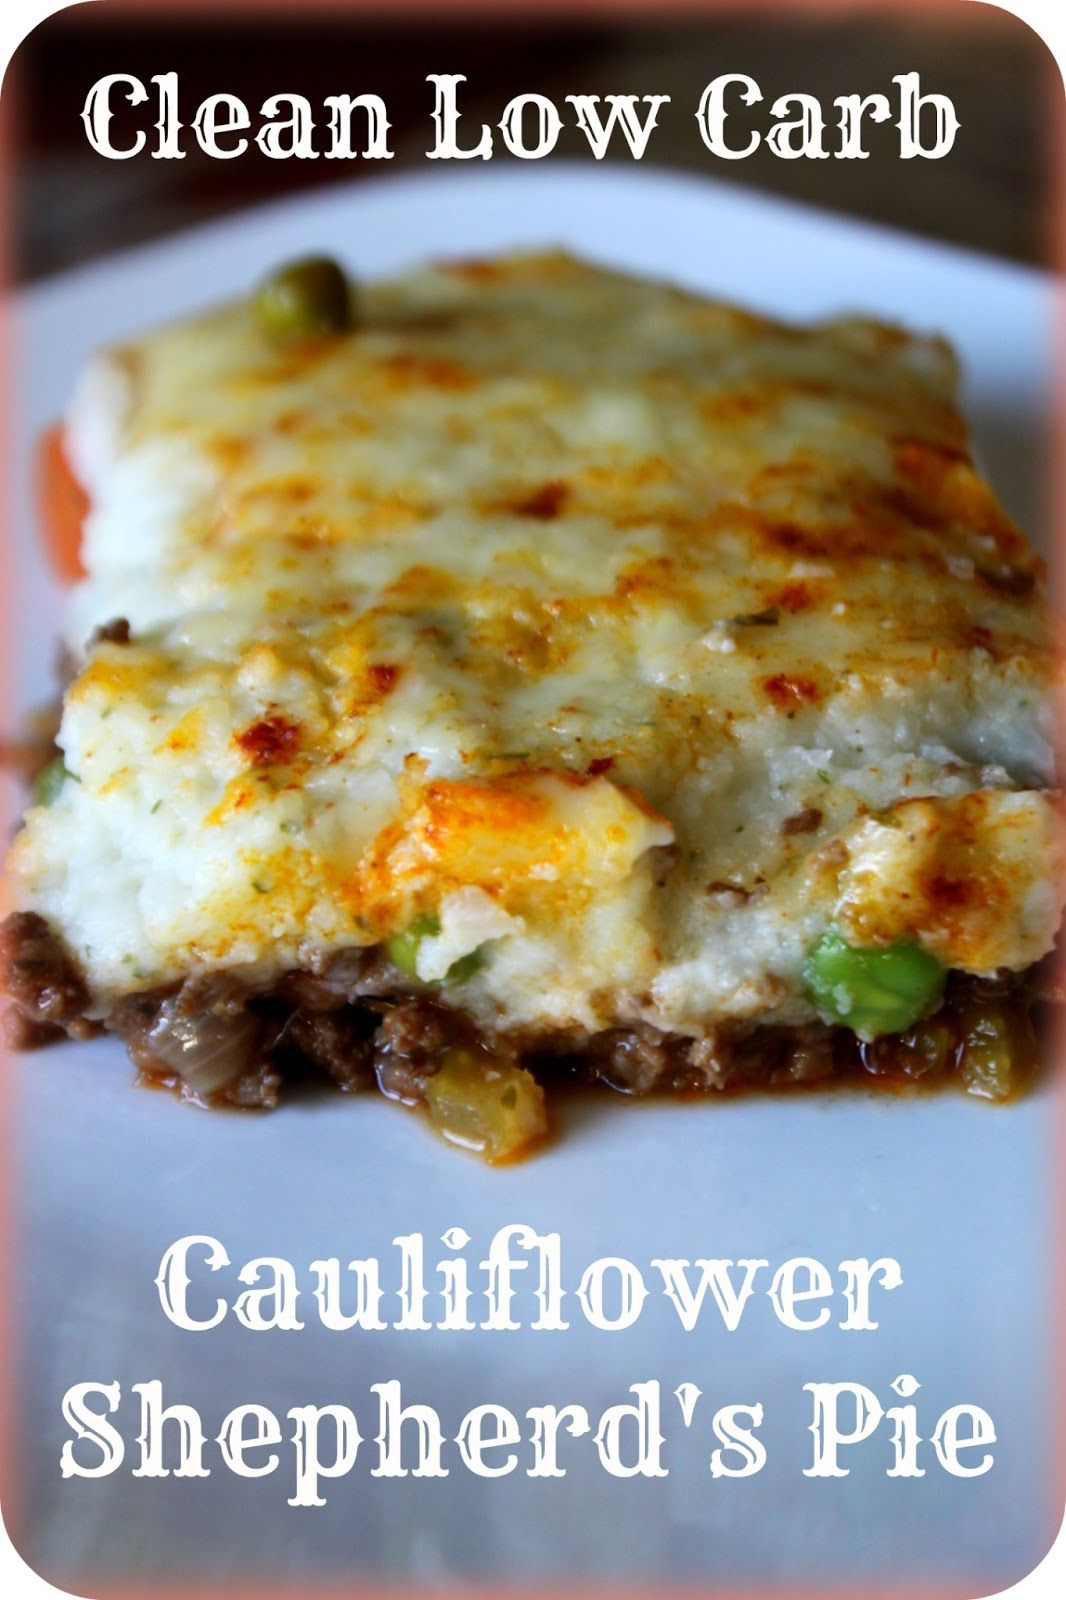 Spring Flooding Clean Low Carb Gf Cauliflower Shepherd S Pie Carb Free Recipes Healthy Recipes Low Carb Eating